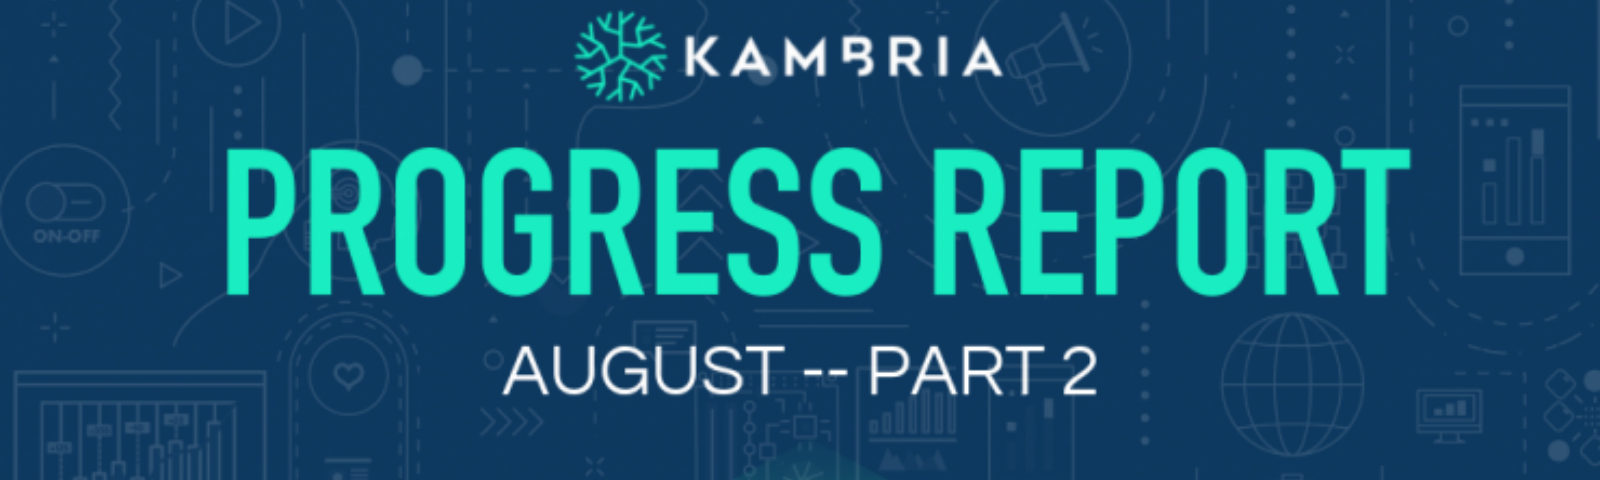 Kambria Progress Report -- August 2019, Part 2